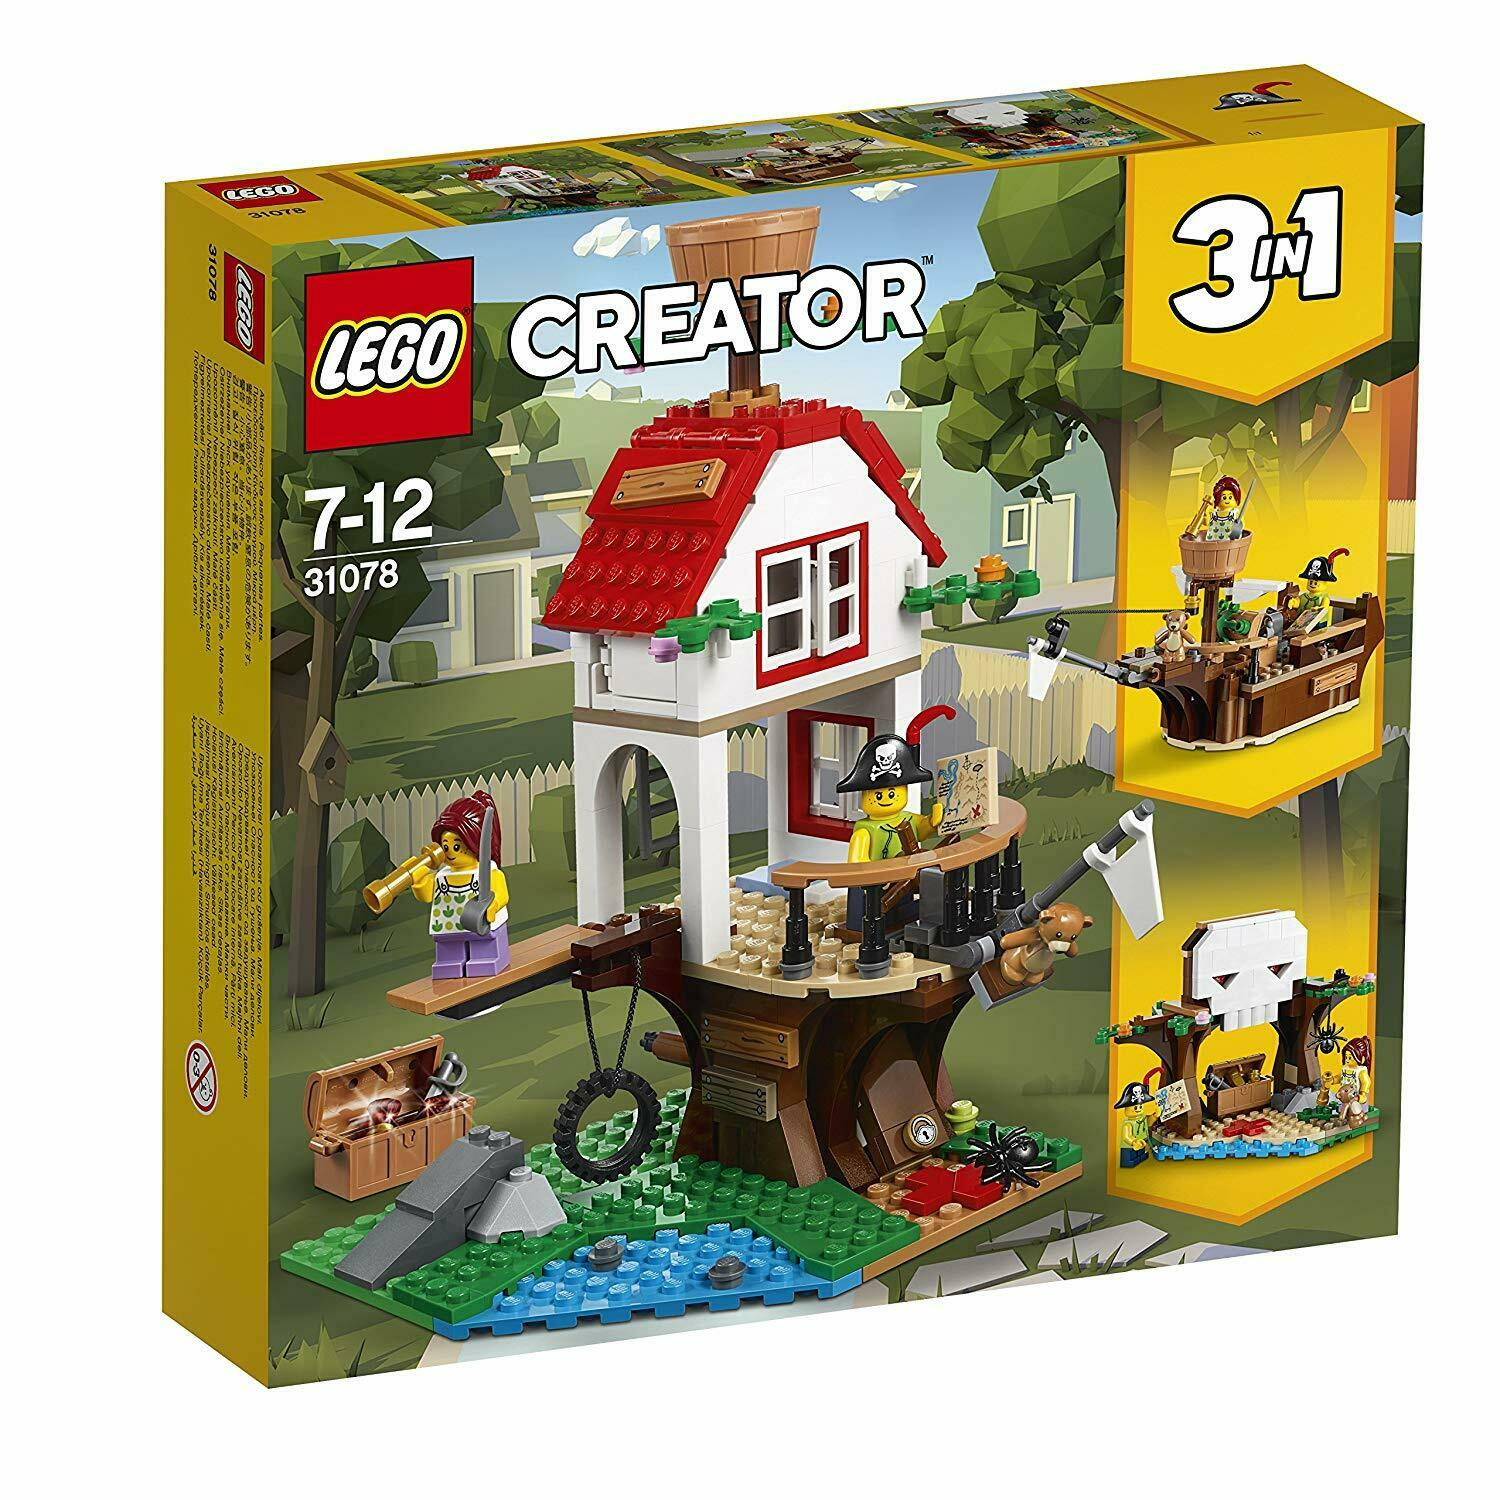 LEGO 31078 Creator 3-IN-1 3-IN-1 3-IN-1 Model Tree House Treasures Toy Ship And Cave Toy Set 2461f9